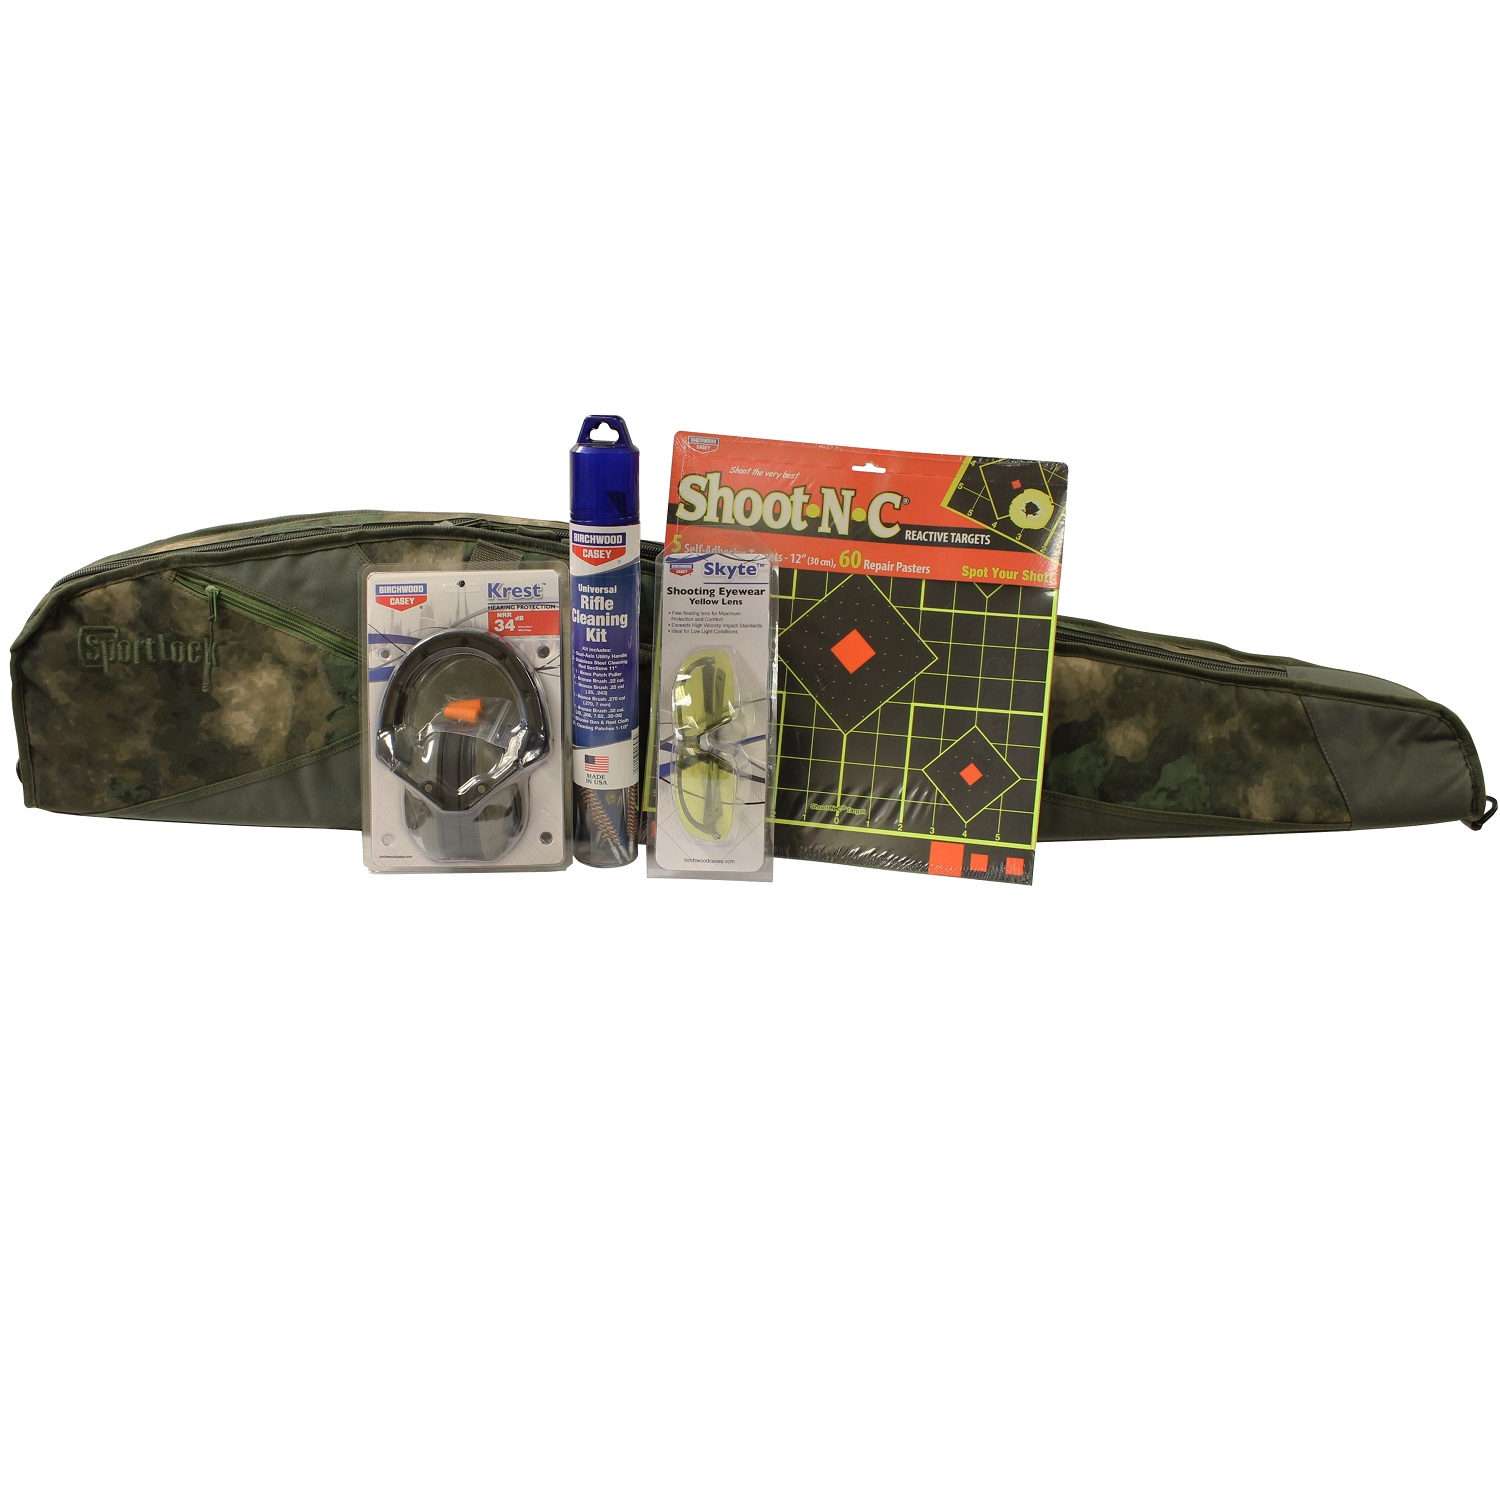 Birchwood Casey Rifle Beginners Kit